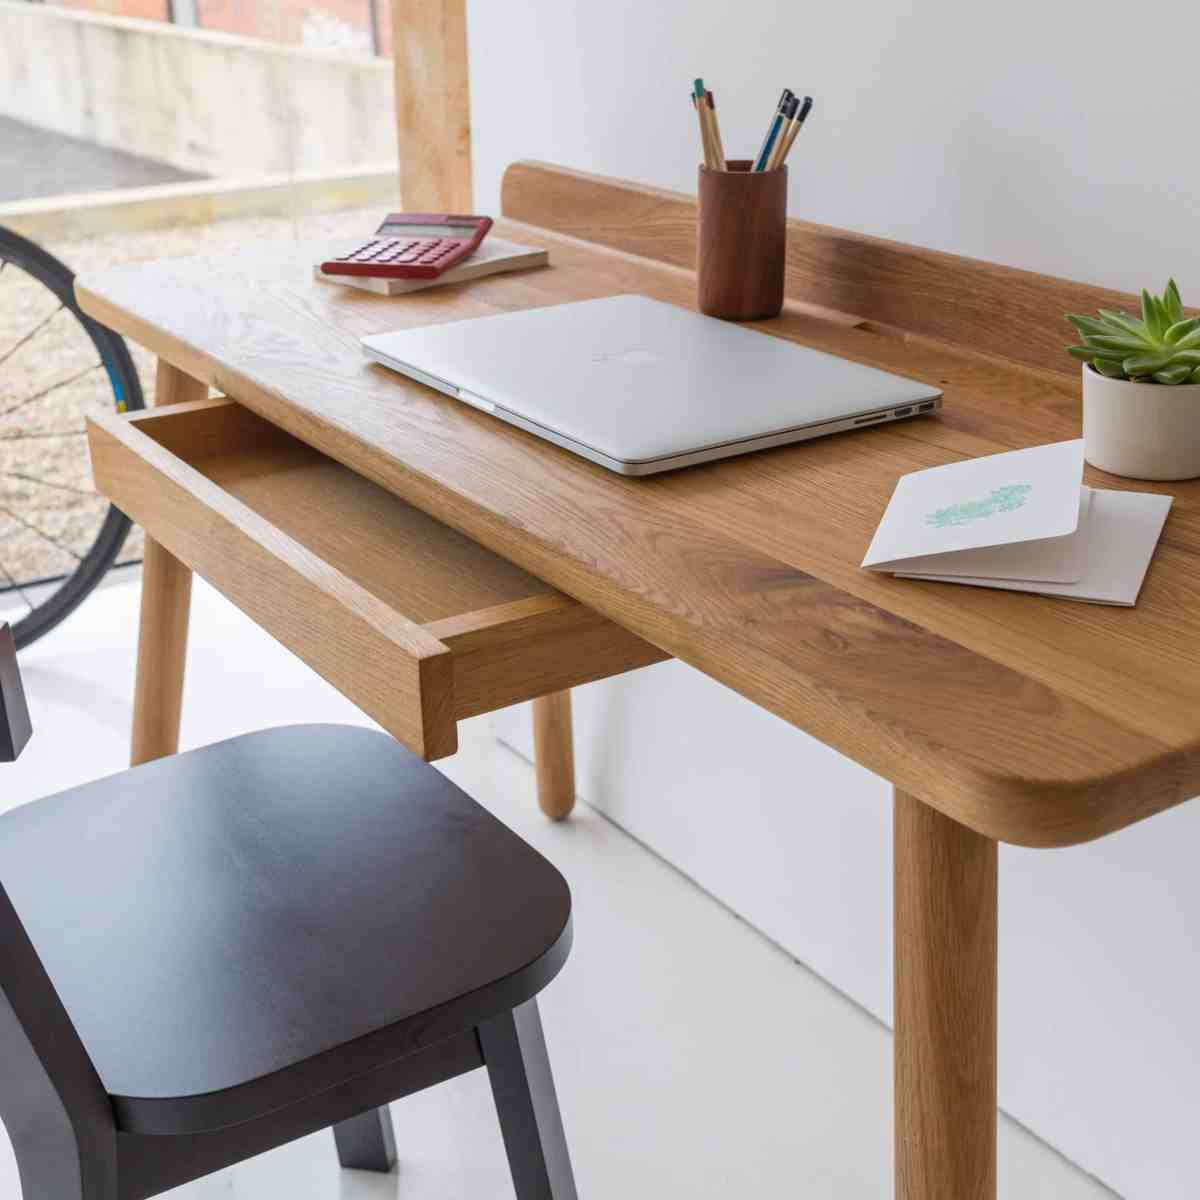 contemporary-craft-products-desk-one-Another-Country-001